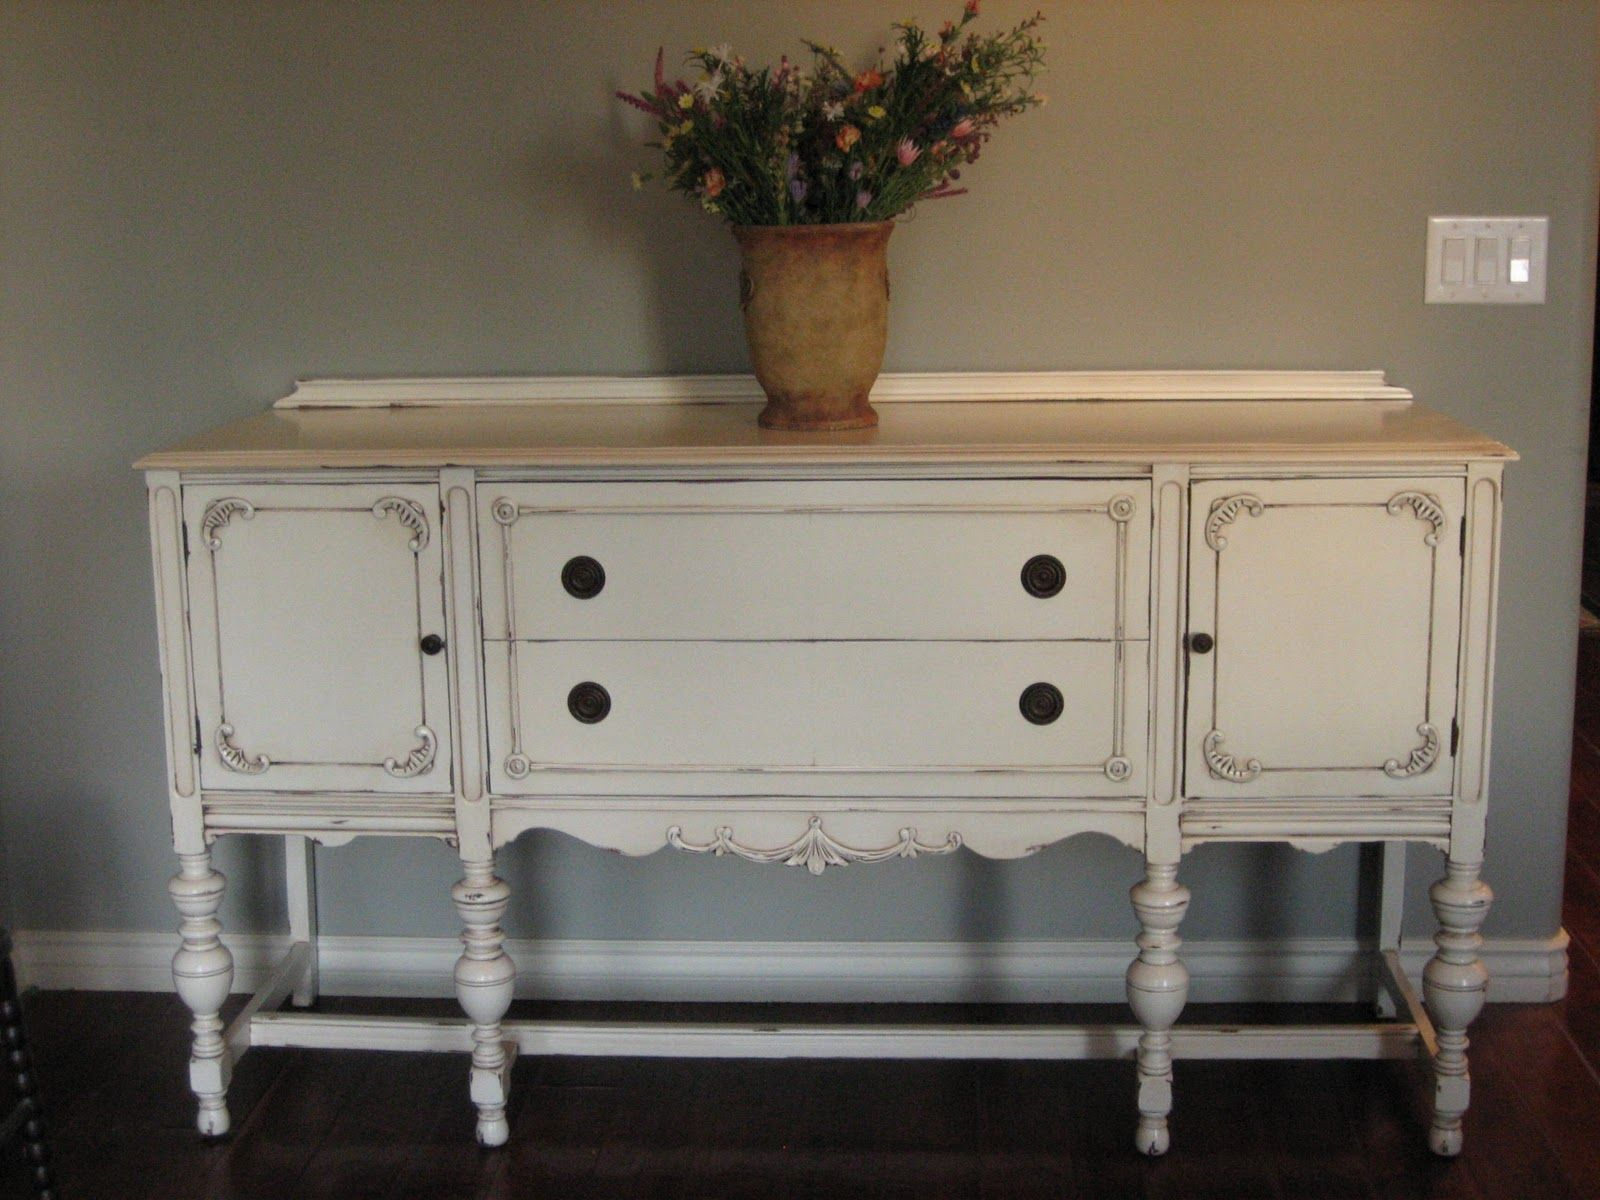 Antique buffet table furniture - European Paint Finishes Another Pretty Antique Sideboard